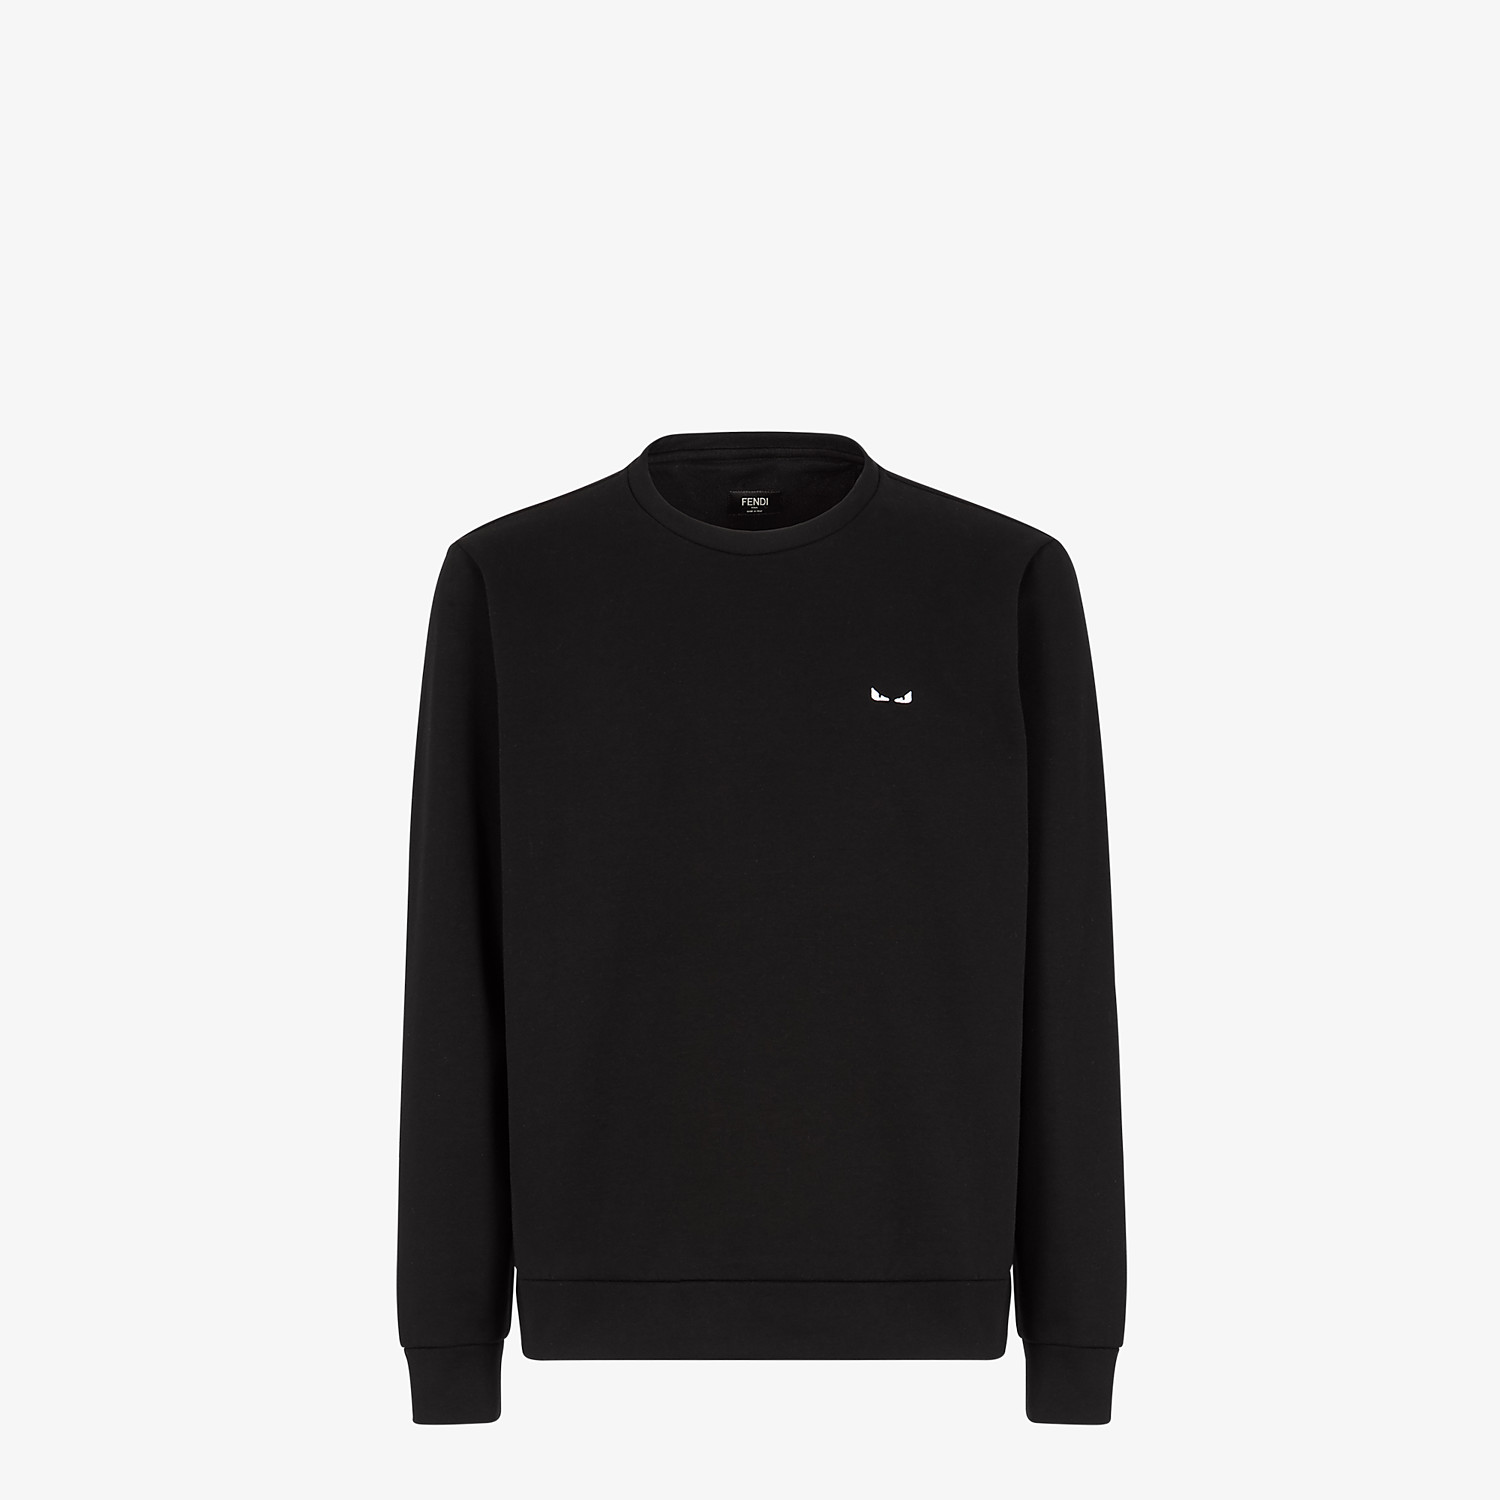 FENDI SWEATSHIRT - Black cotton - view 1 detail